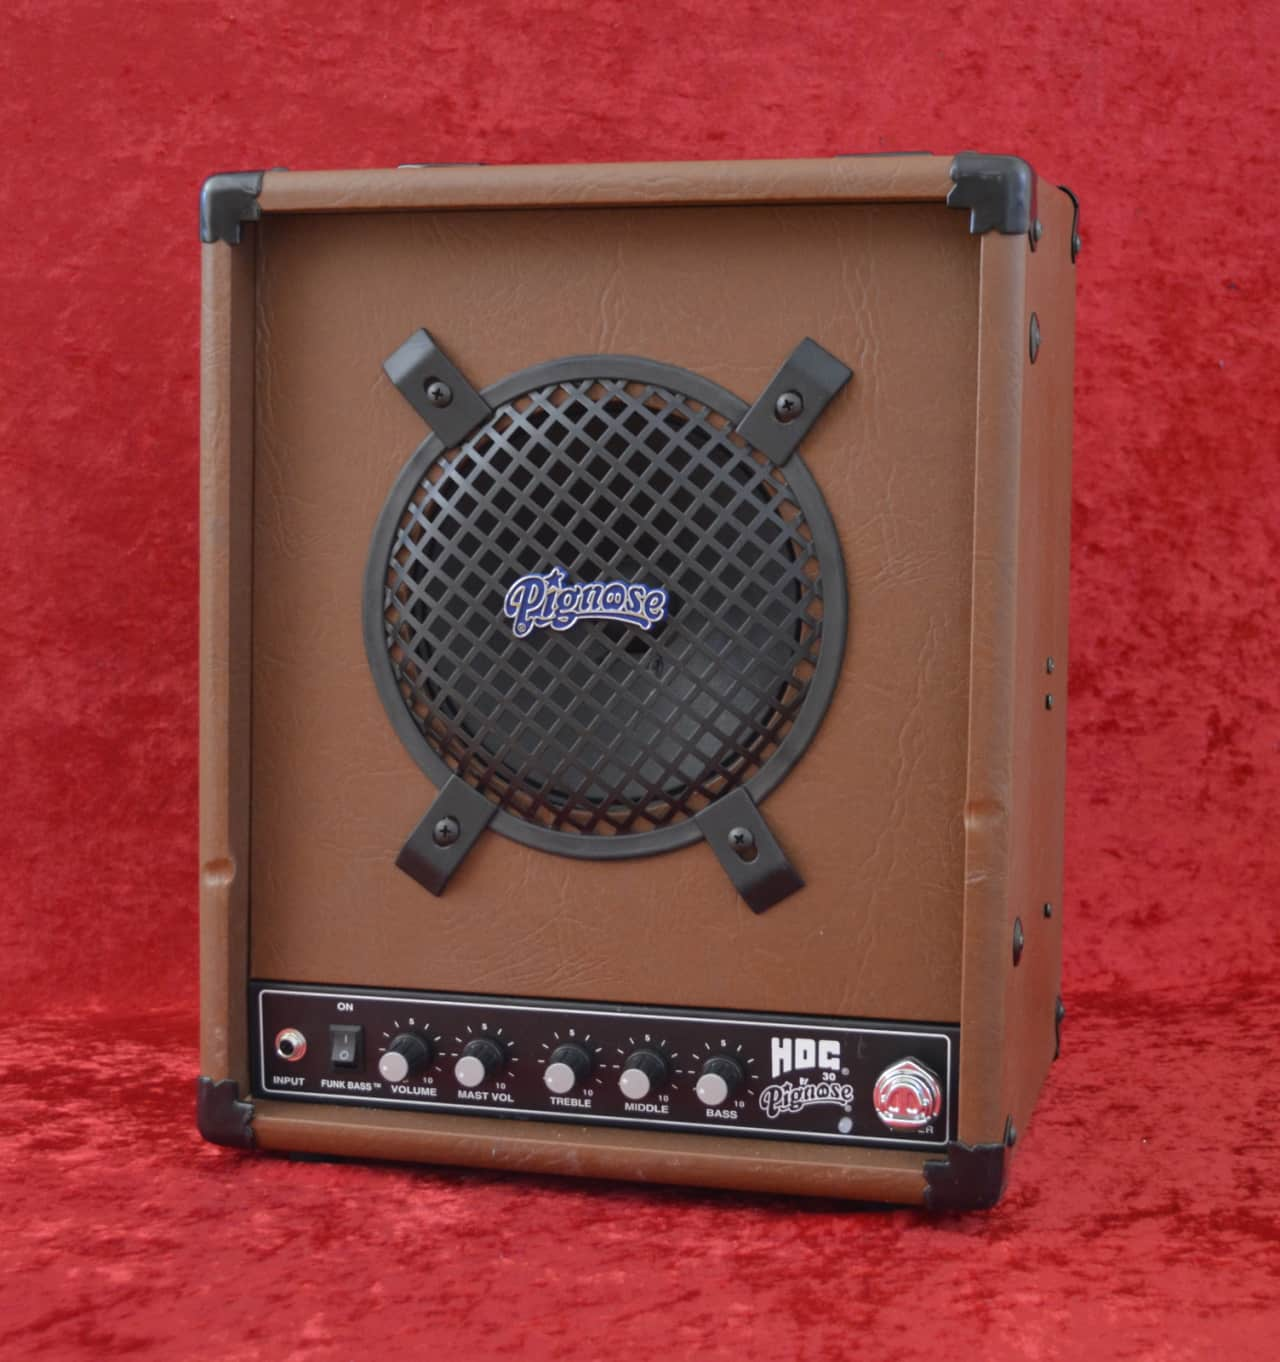 Bass Guitar Through Keyboard Amp : pignose hog 30 amplifier portable bass guitar keyboard reverb ~ Russianpoet.info Haus und Dekorationen